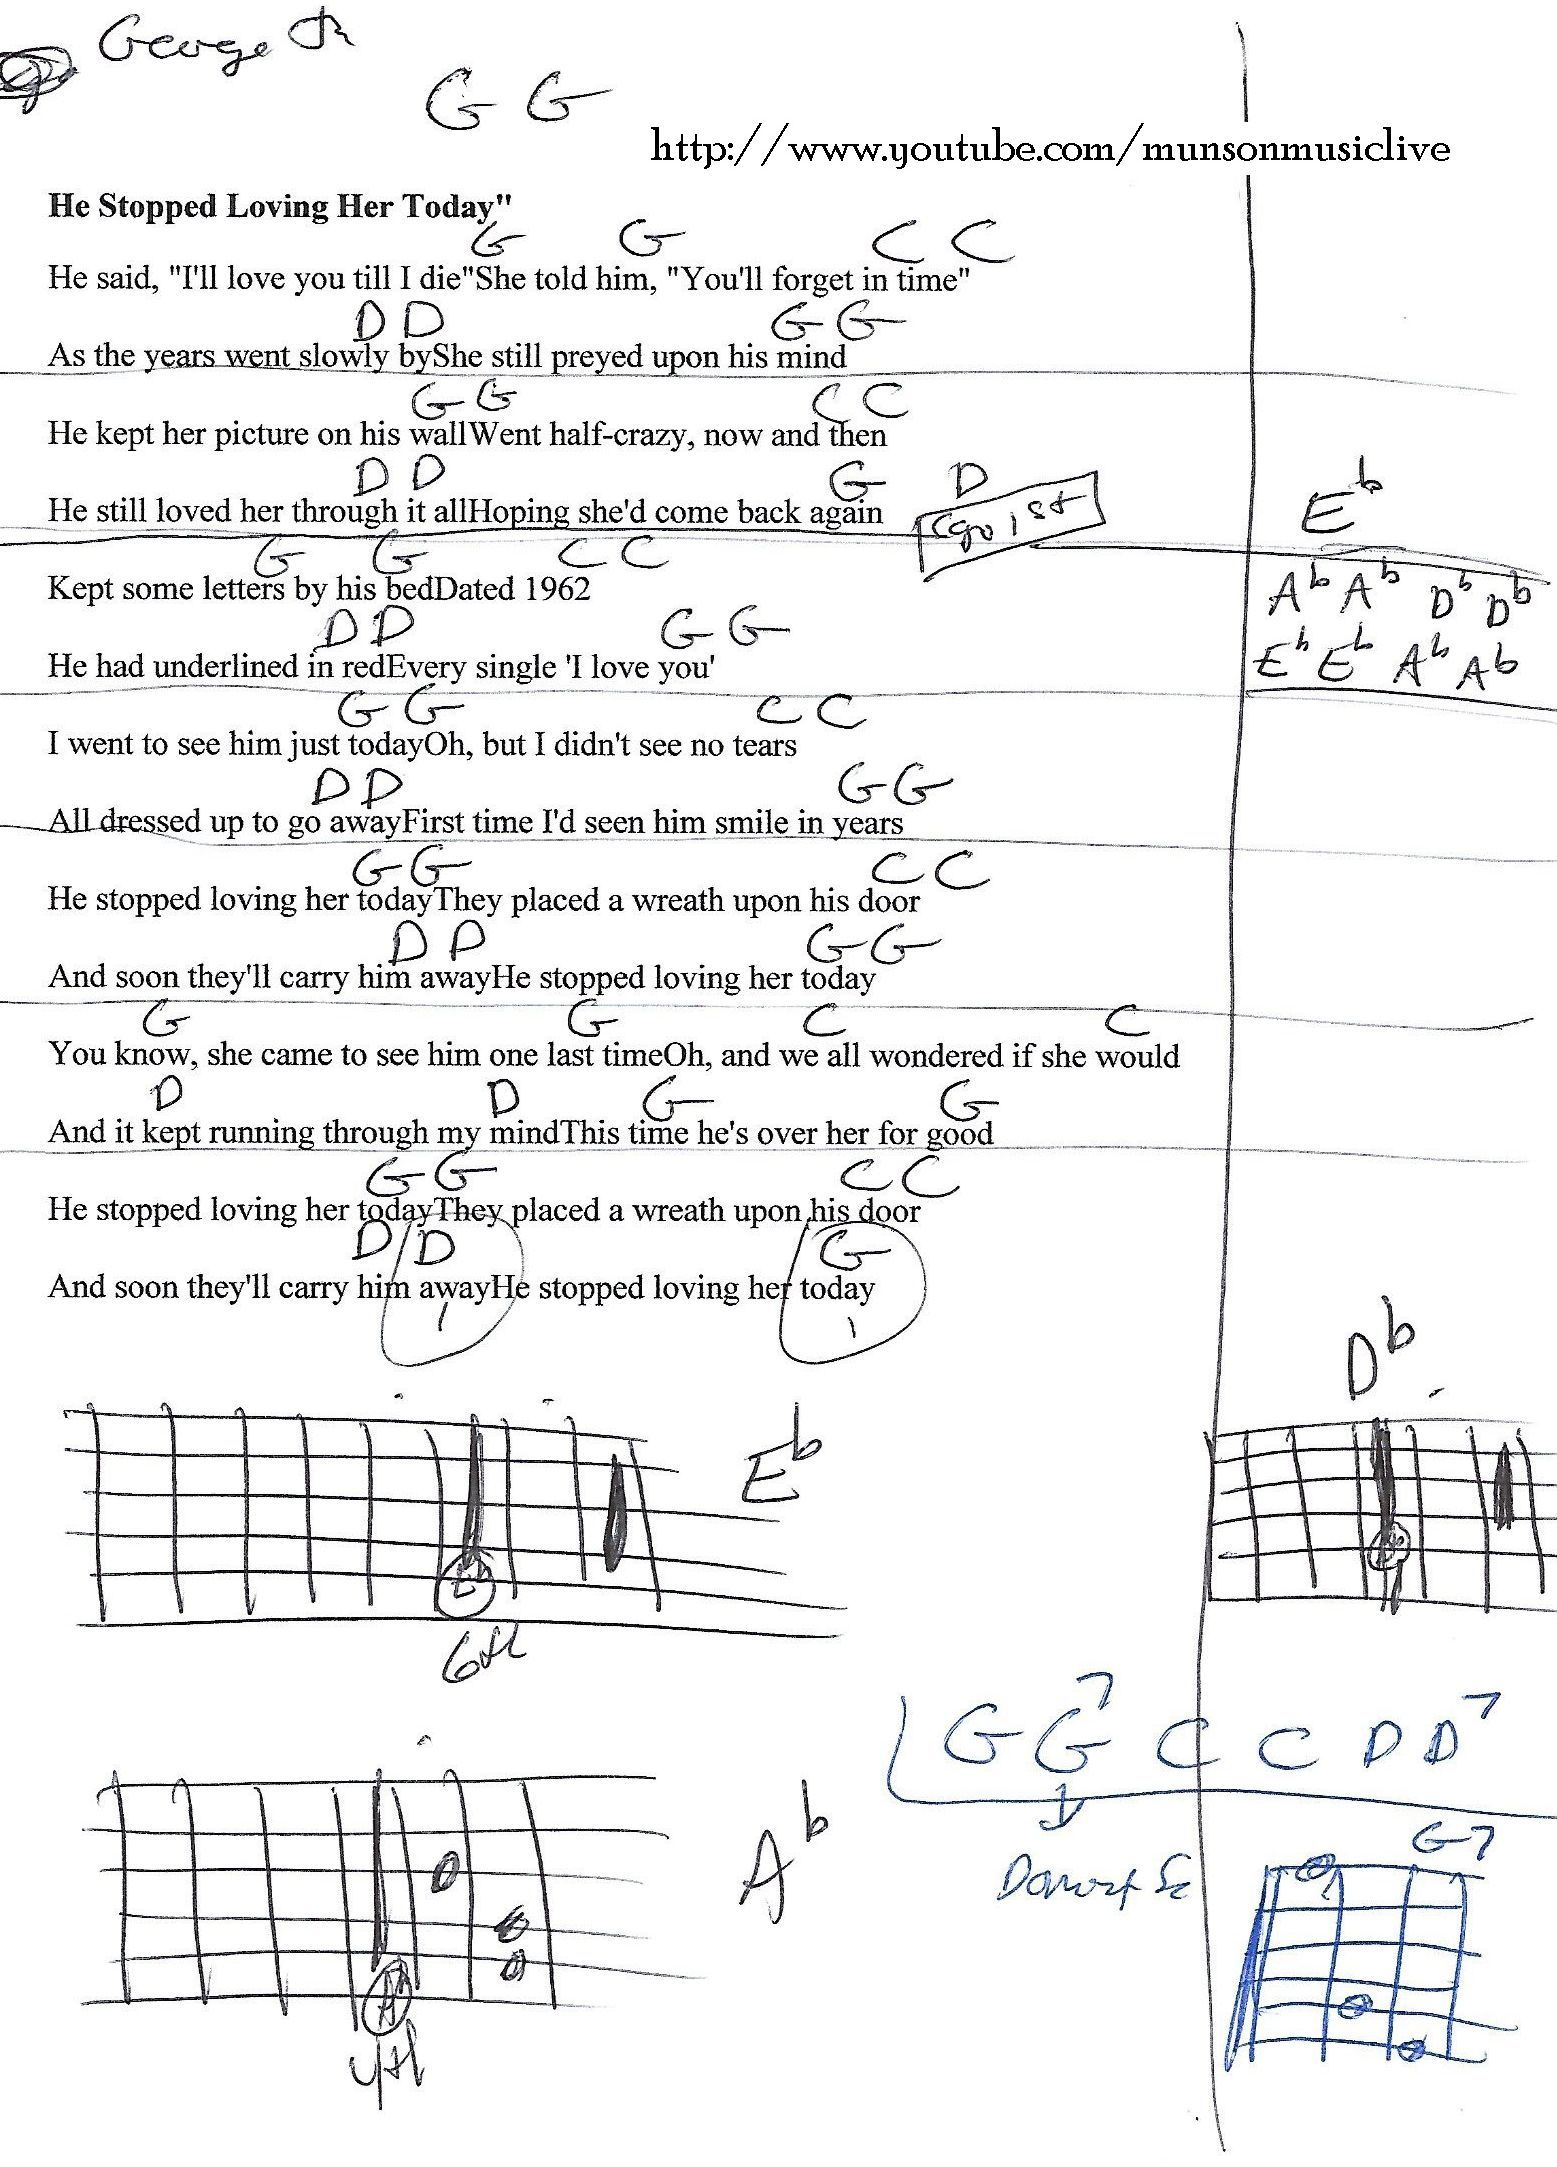 He Stopped Loving Her Today George Jones Guitar Chord Chart